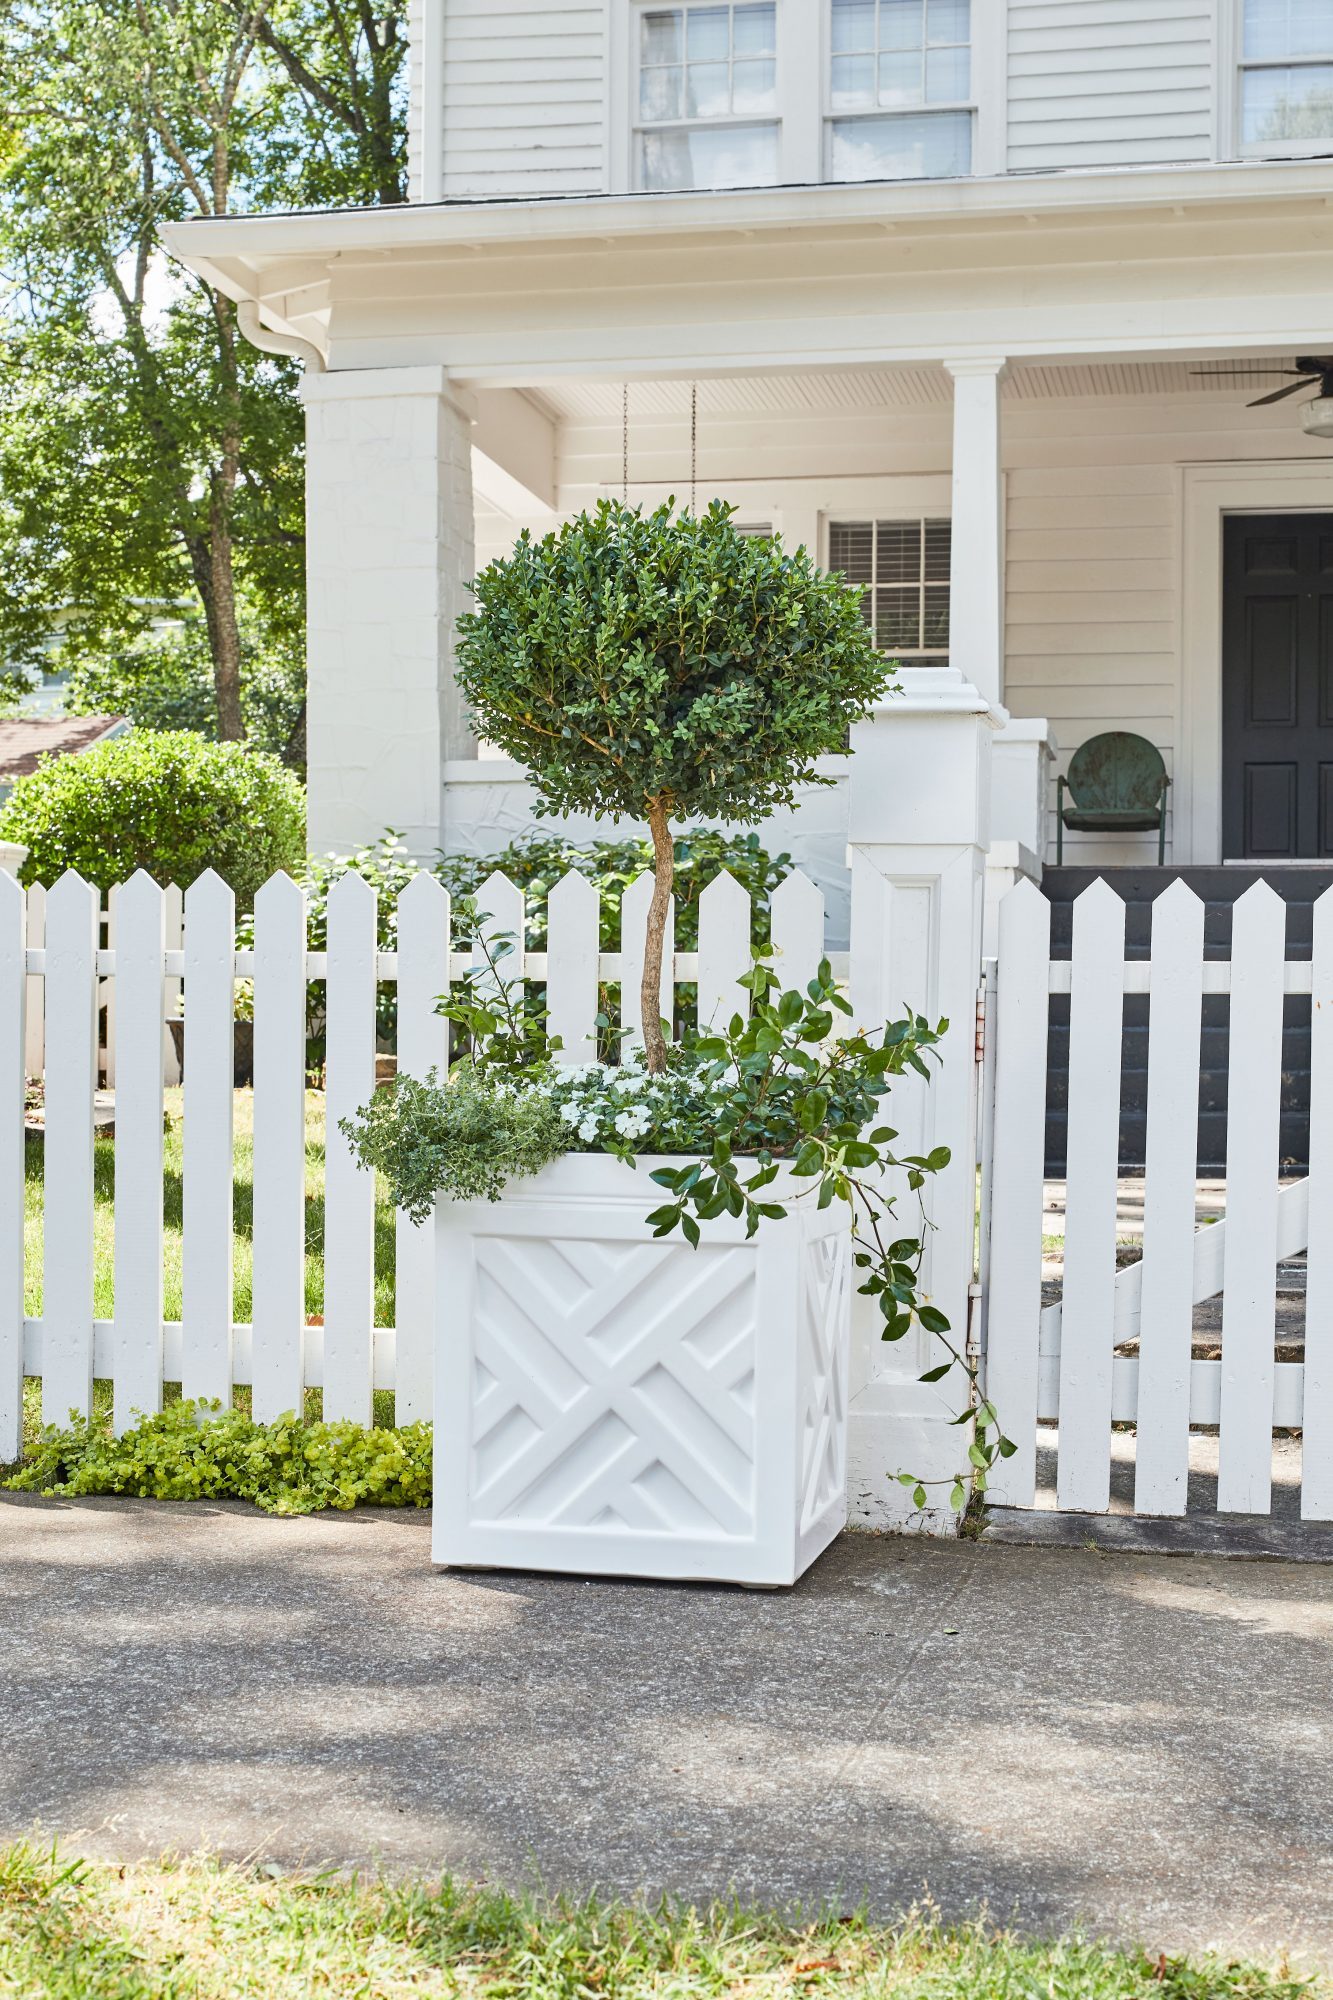 White container with boxwood topiary, phlox, star jasmine, and lemon thyme